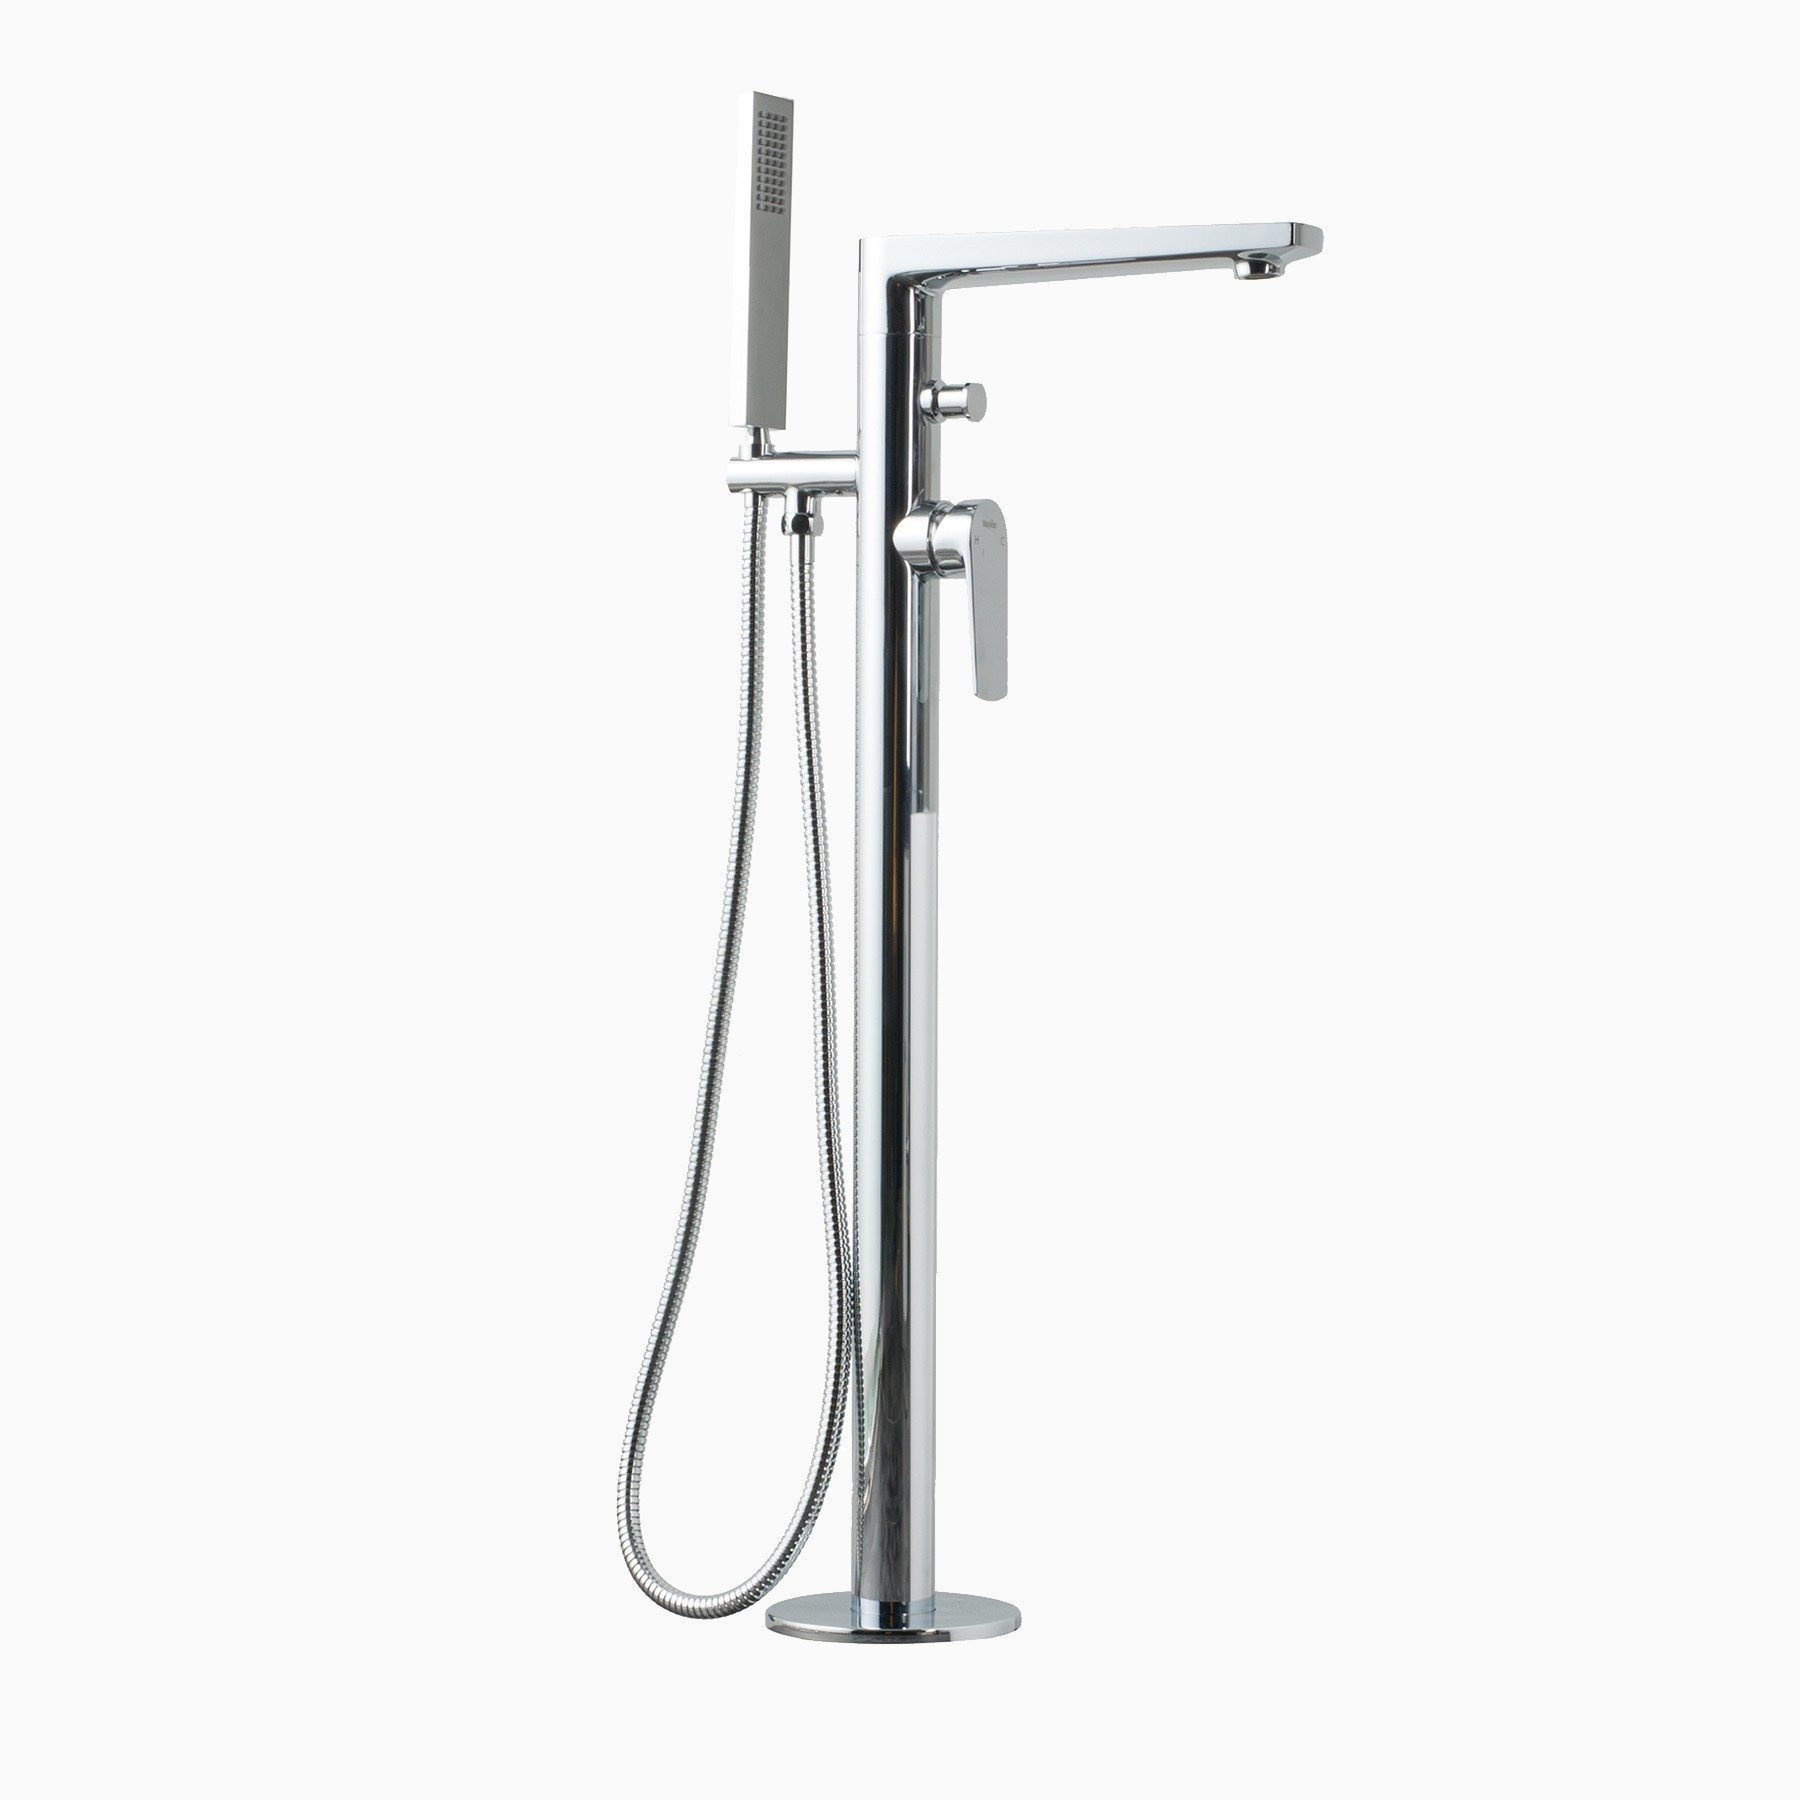 faucet single hardware kohler filler waterfall for pot parts sink bathroom brushed bathtub rubbed faucets oil shower tub freestanding bronze handles delta nickel clear vessel glass